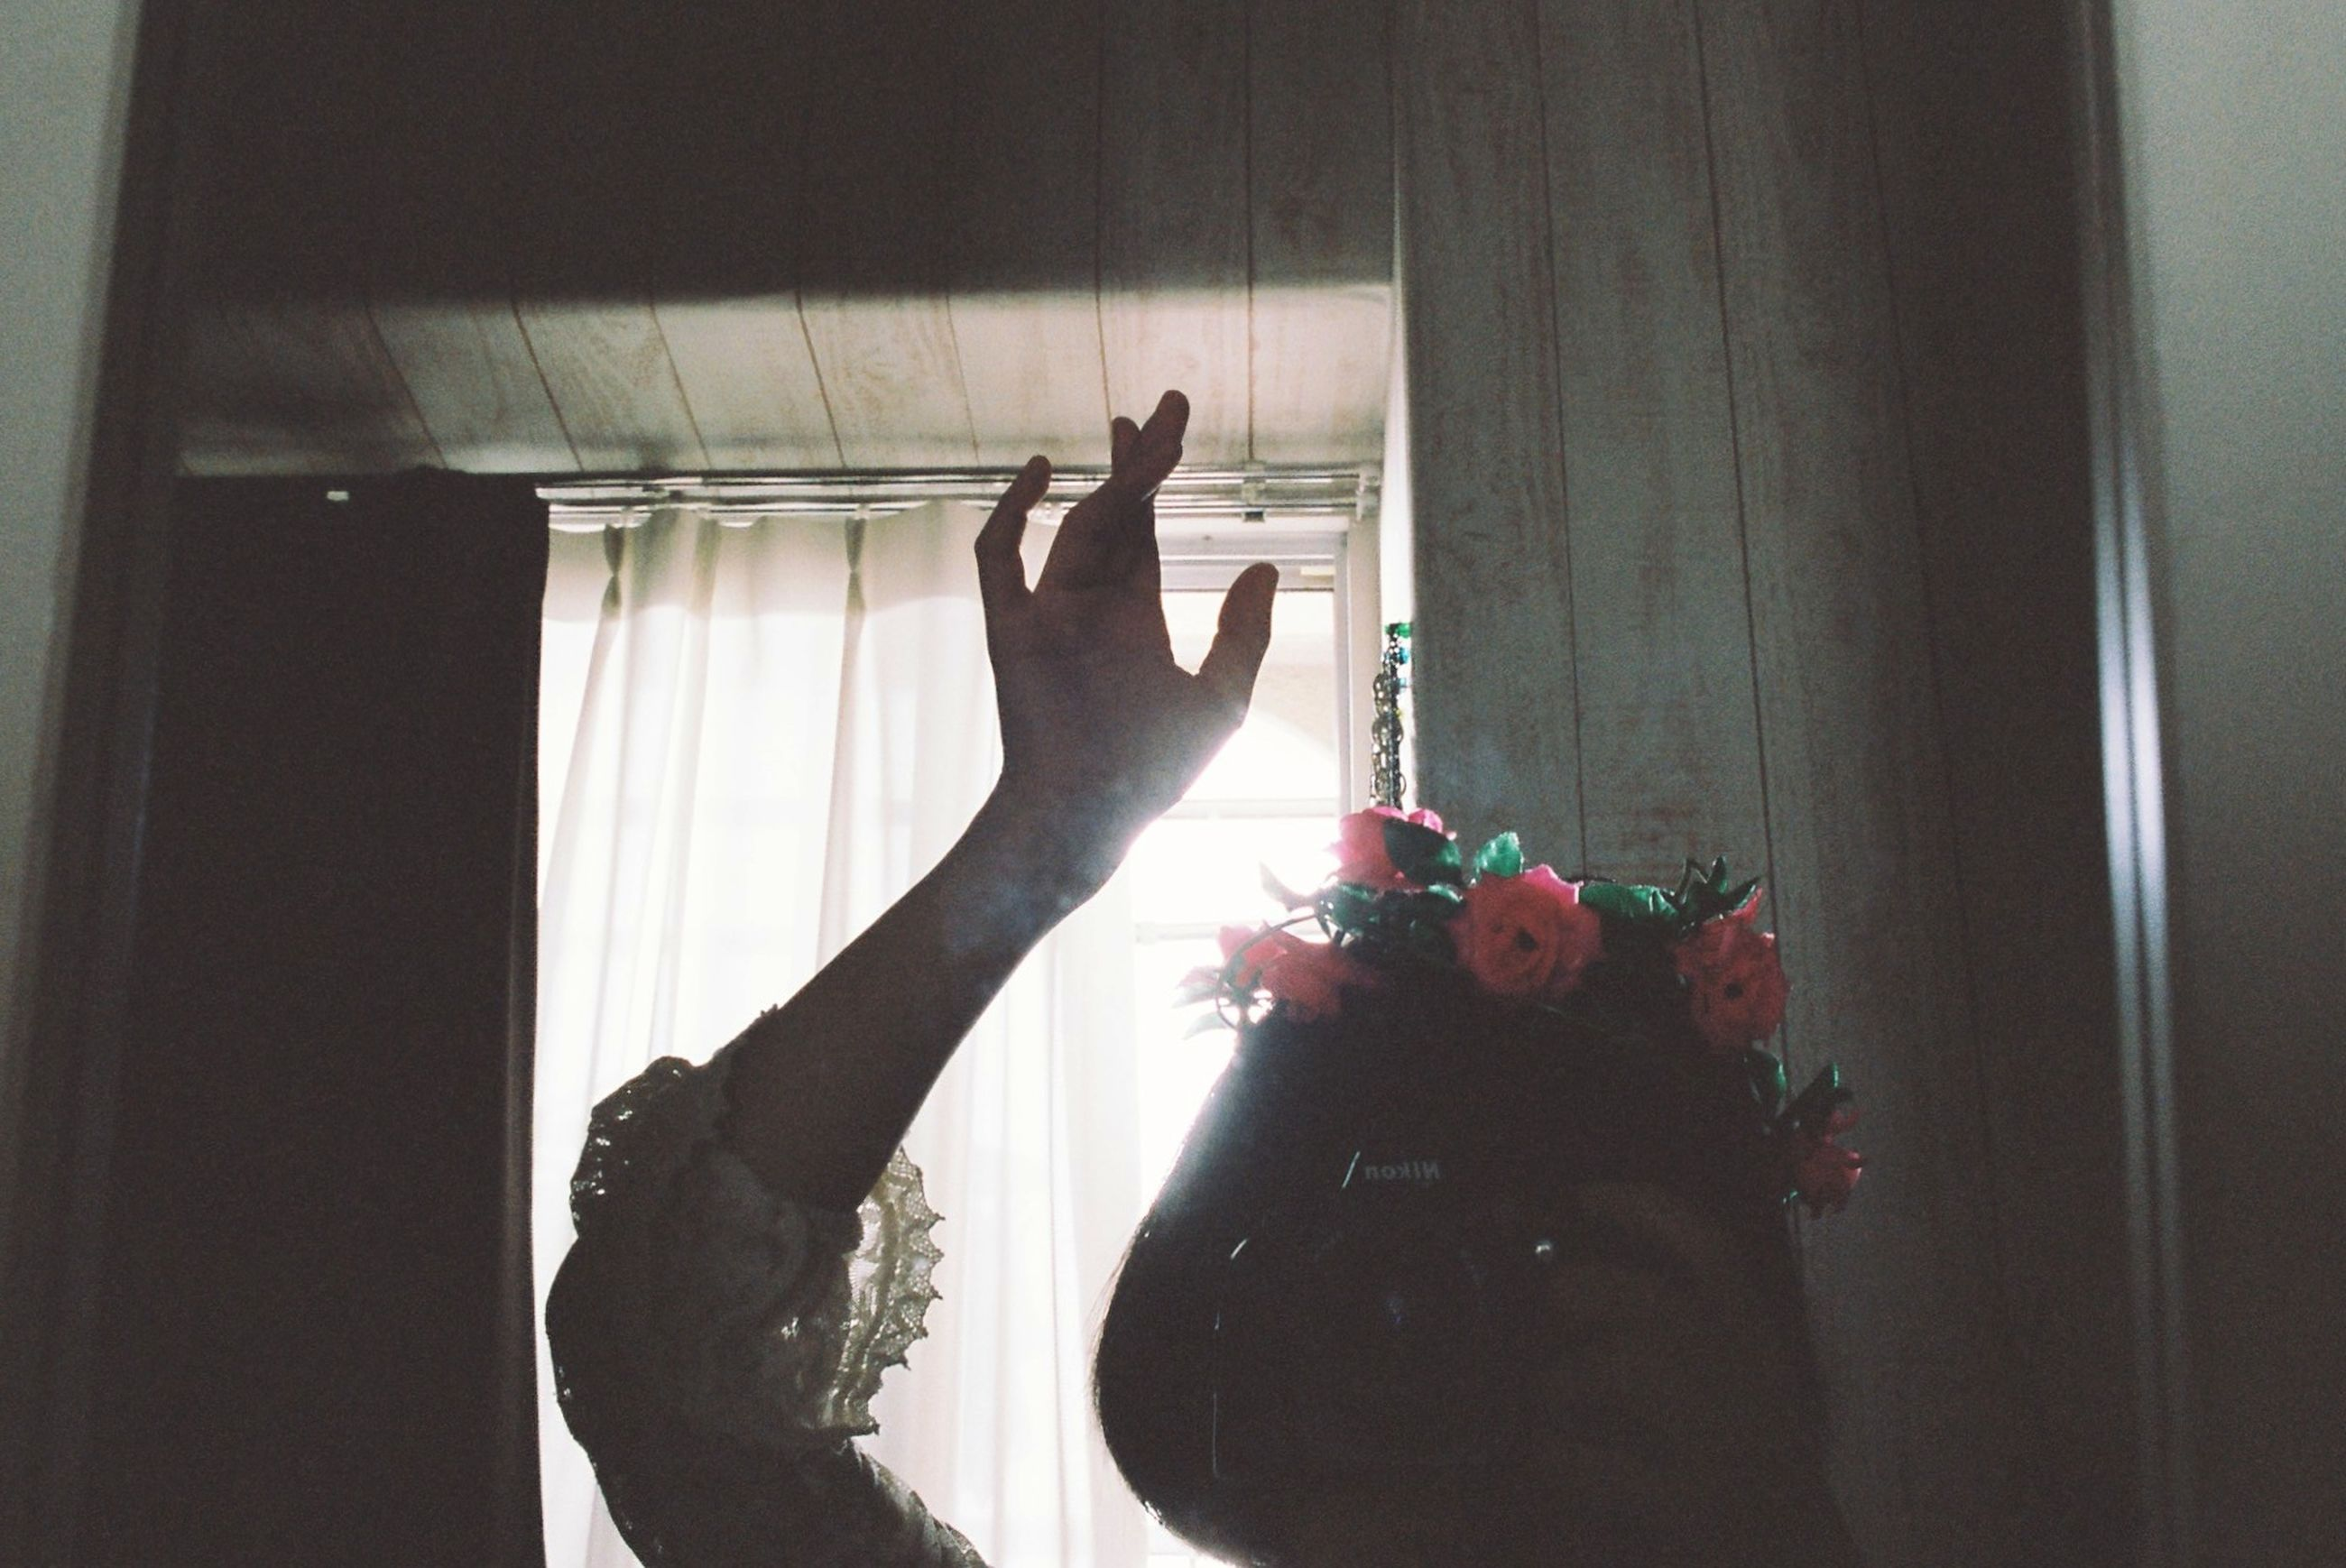 indoors, person, flower, holding, home interior, lifestyles, window, human finger, leisure activity, part of, cropped, freshness, unrecognizable person, sitting, fragility, sunlight